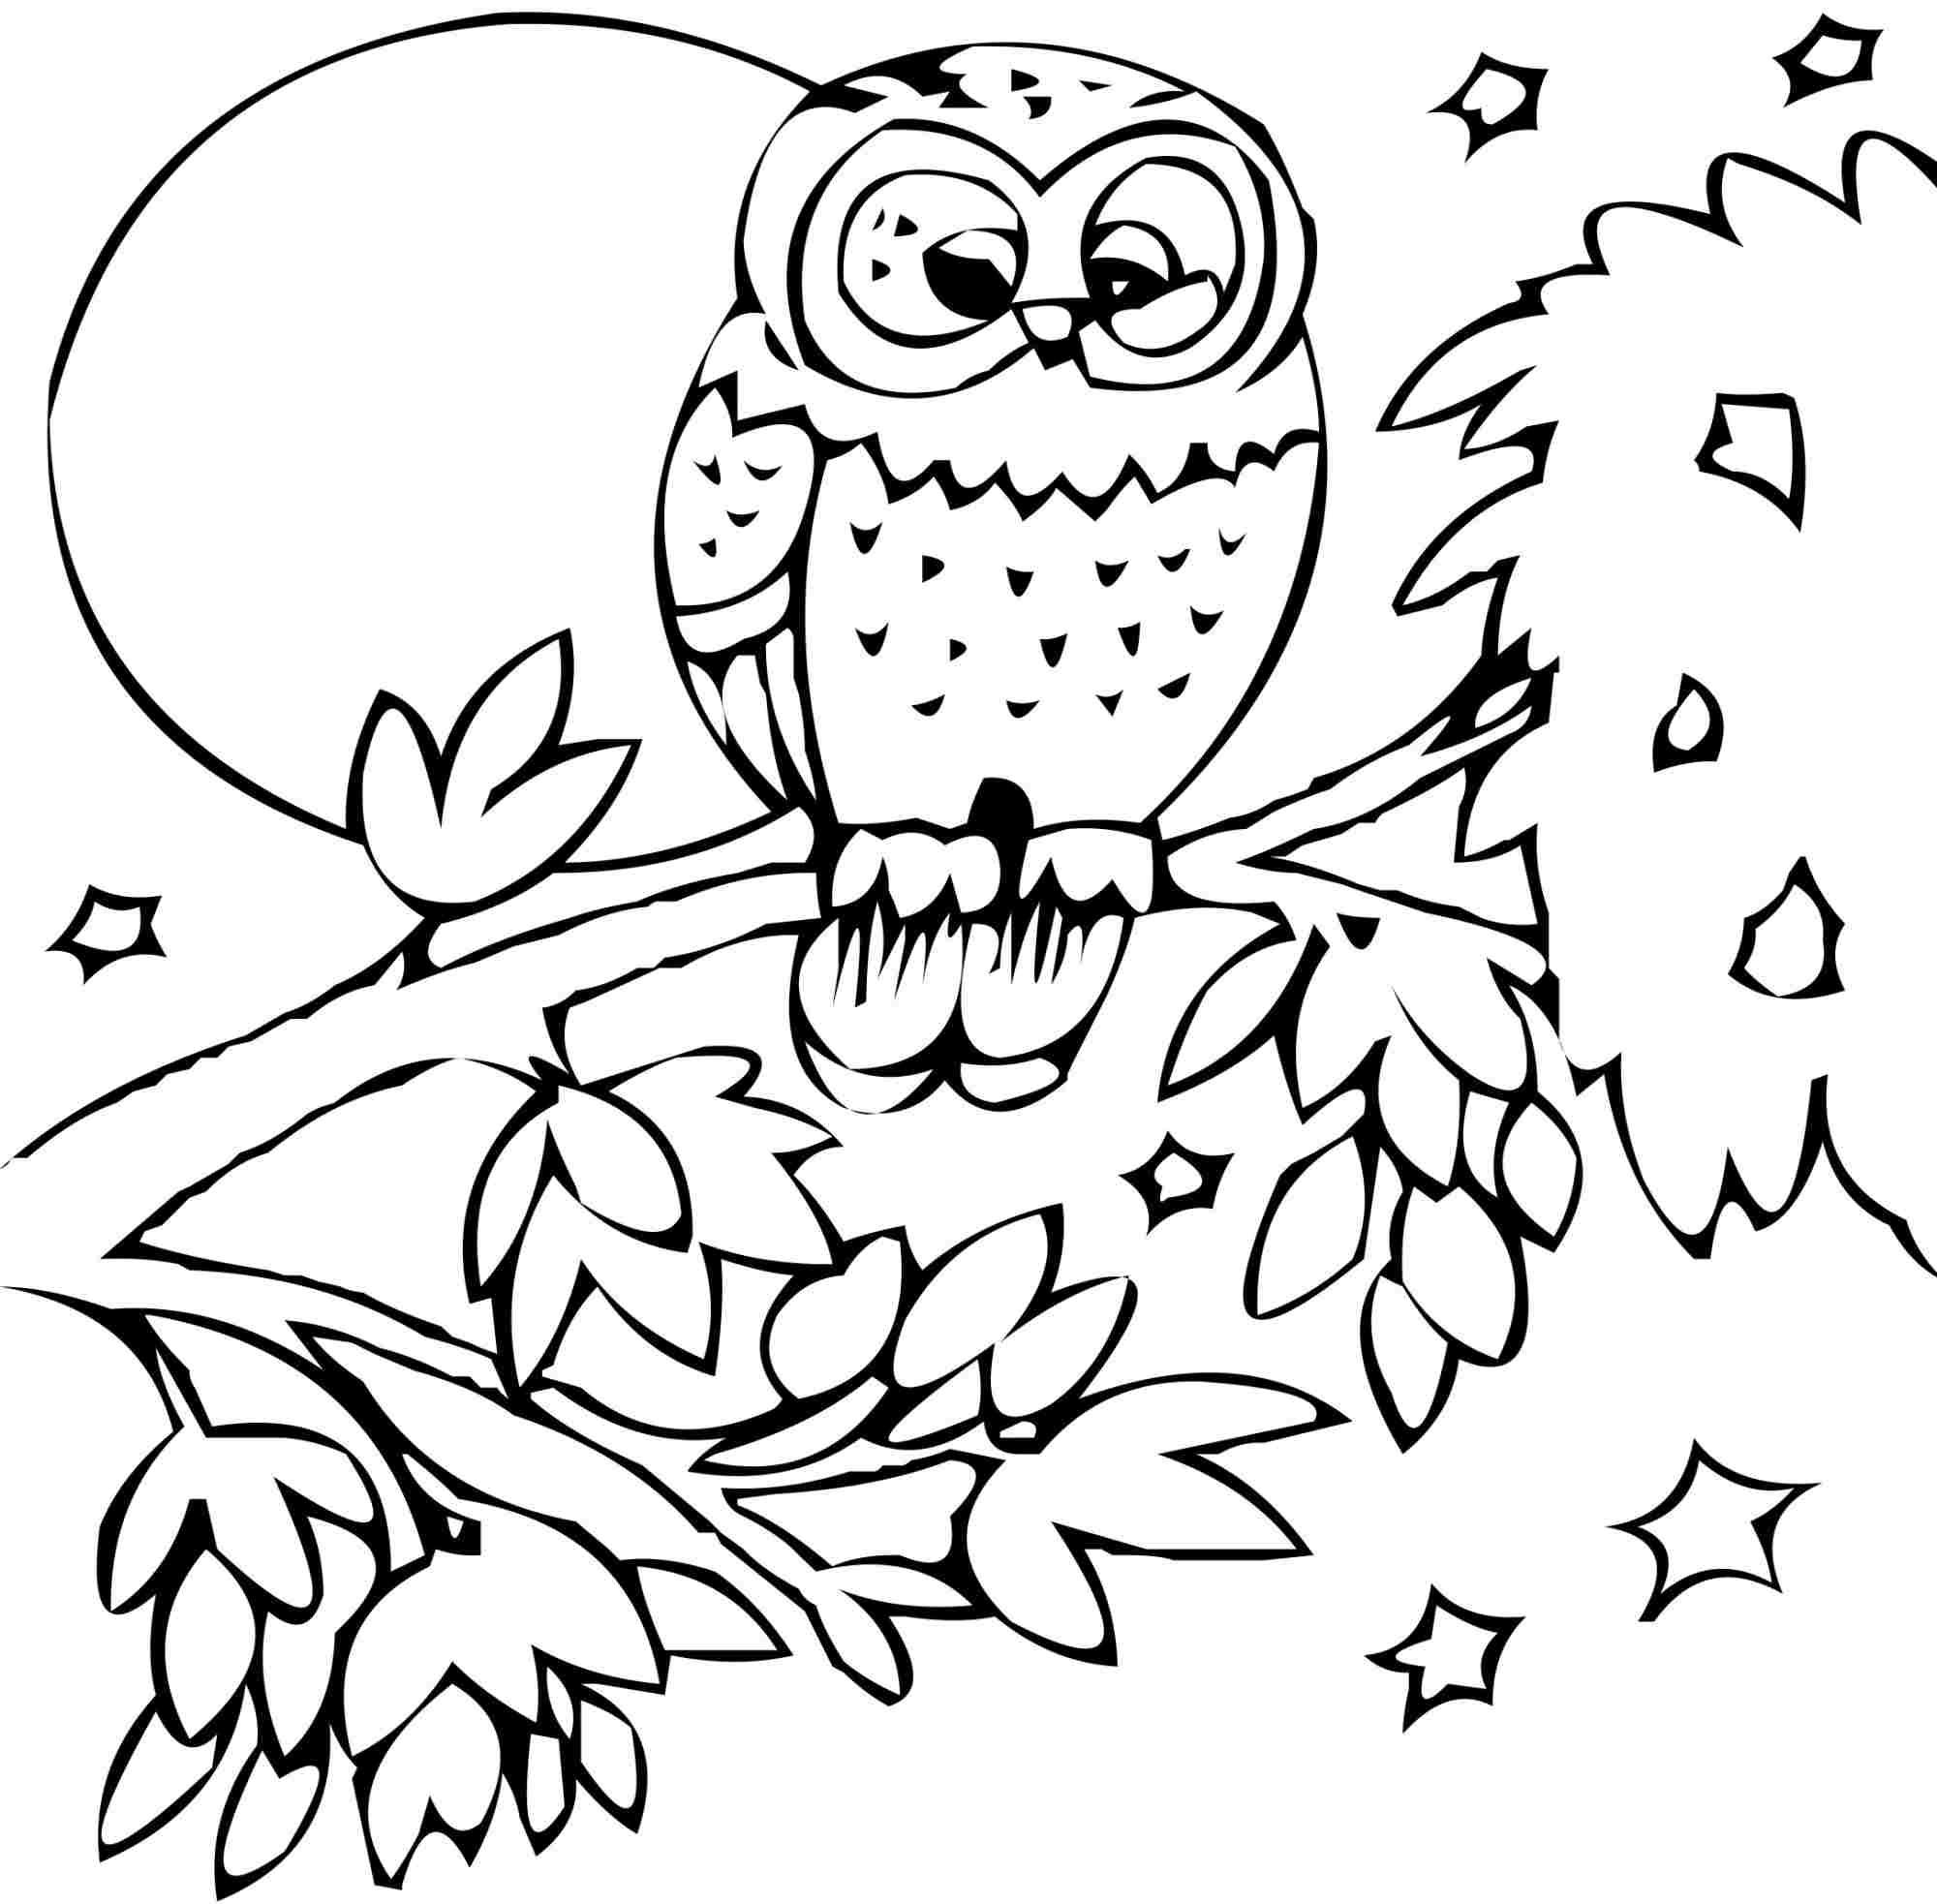 Fall Animals Coloring Pages At Getdrawings